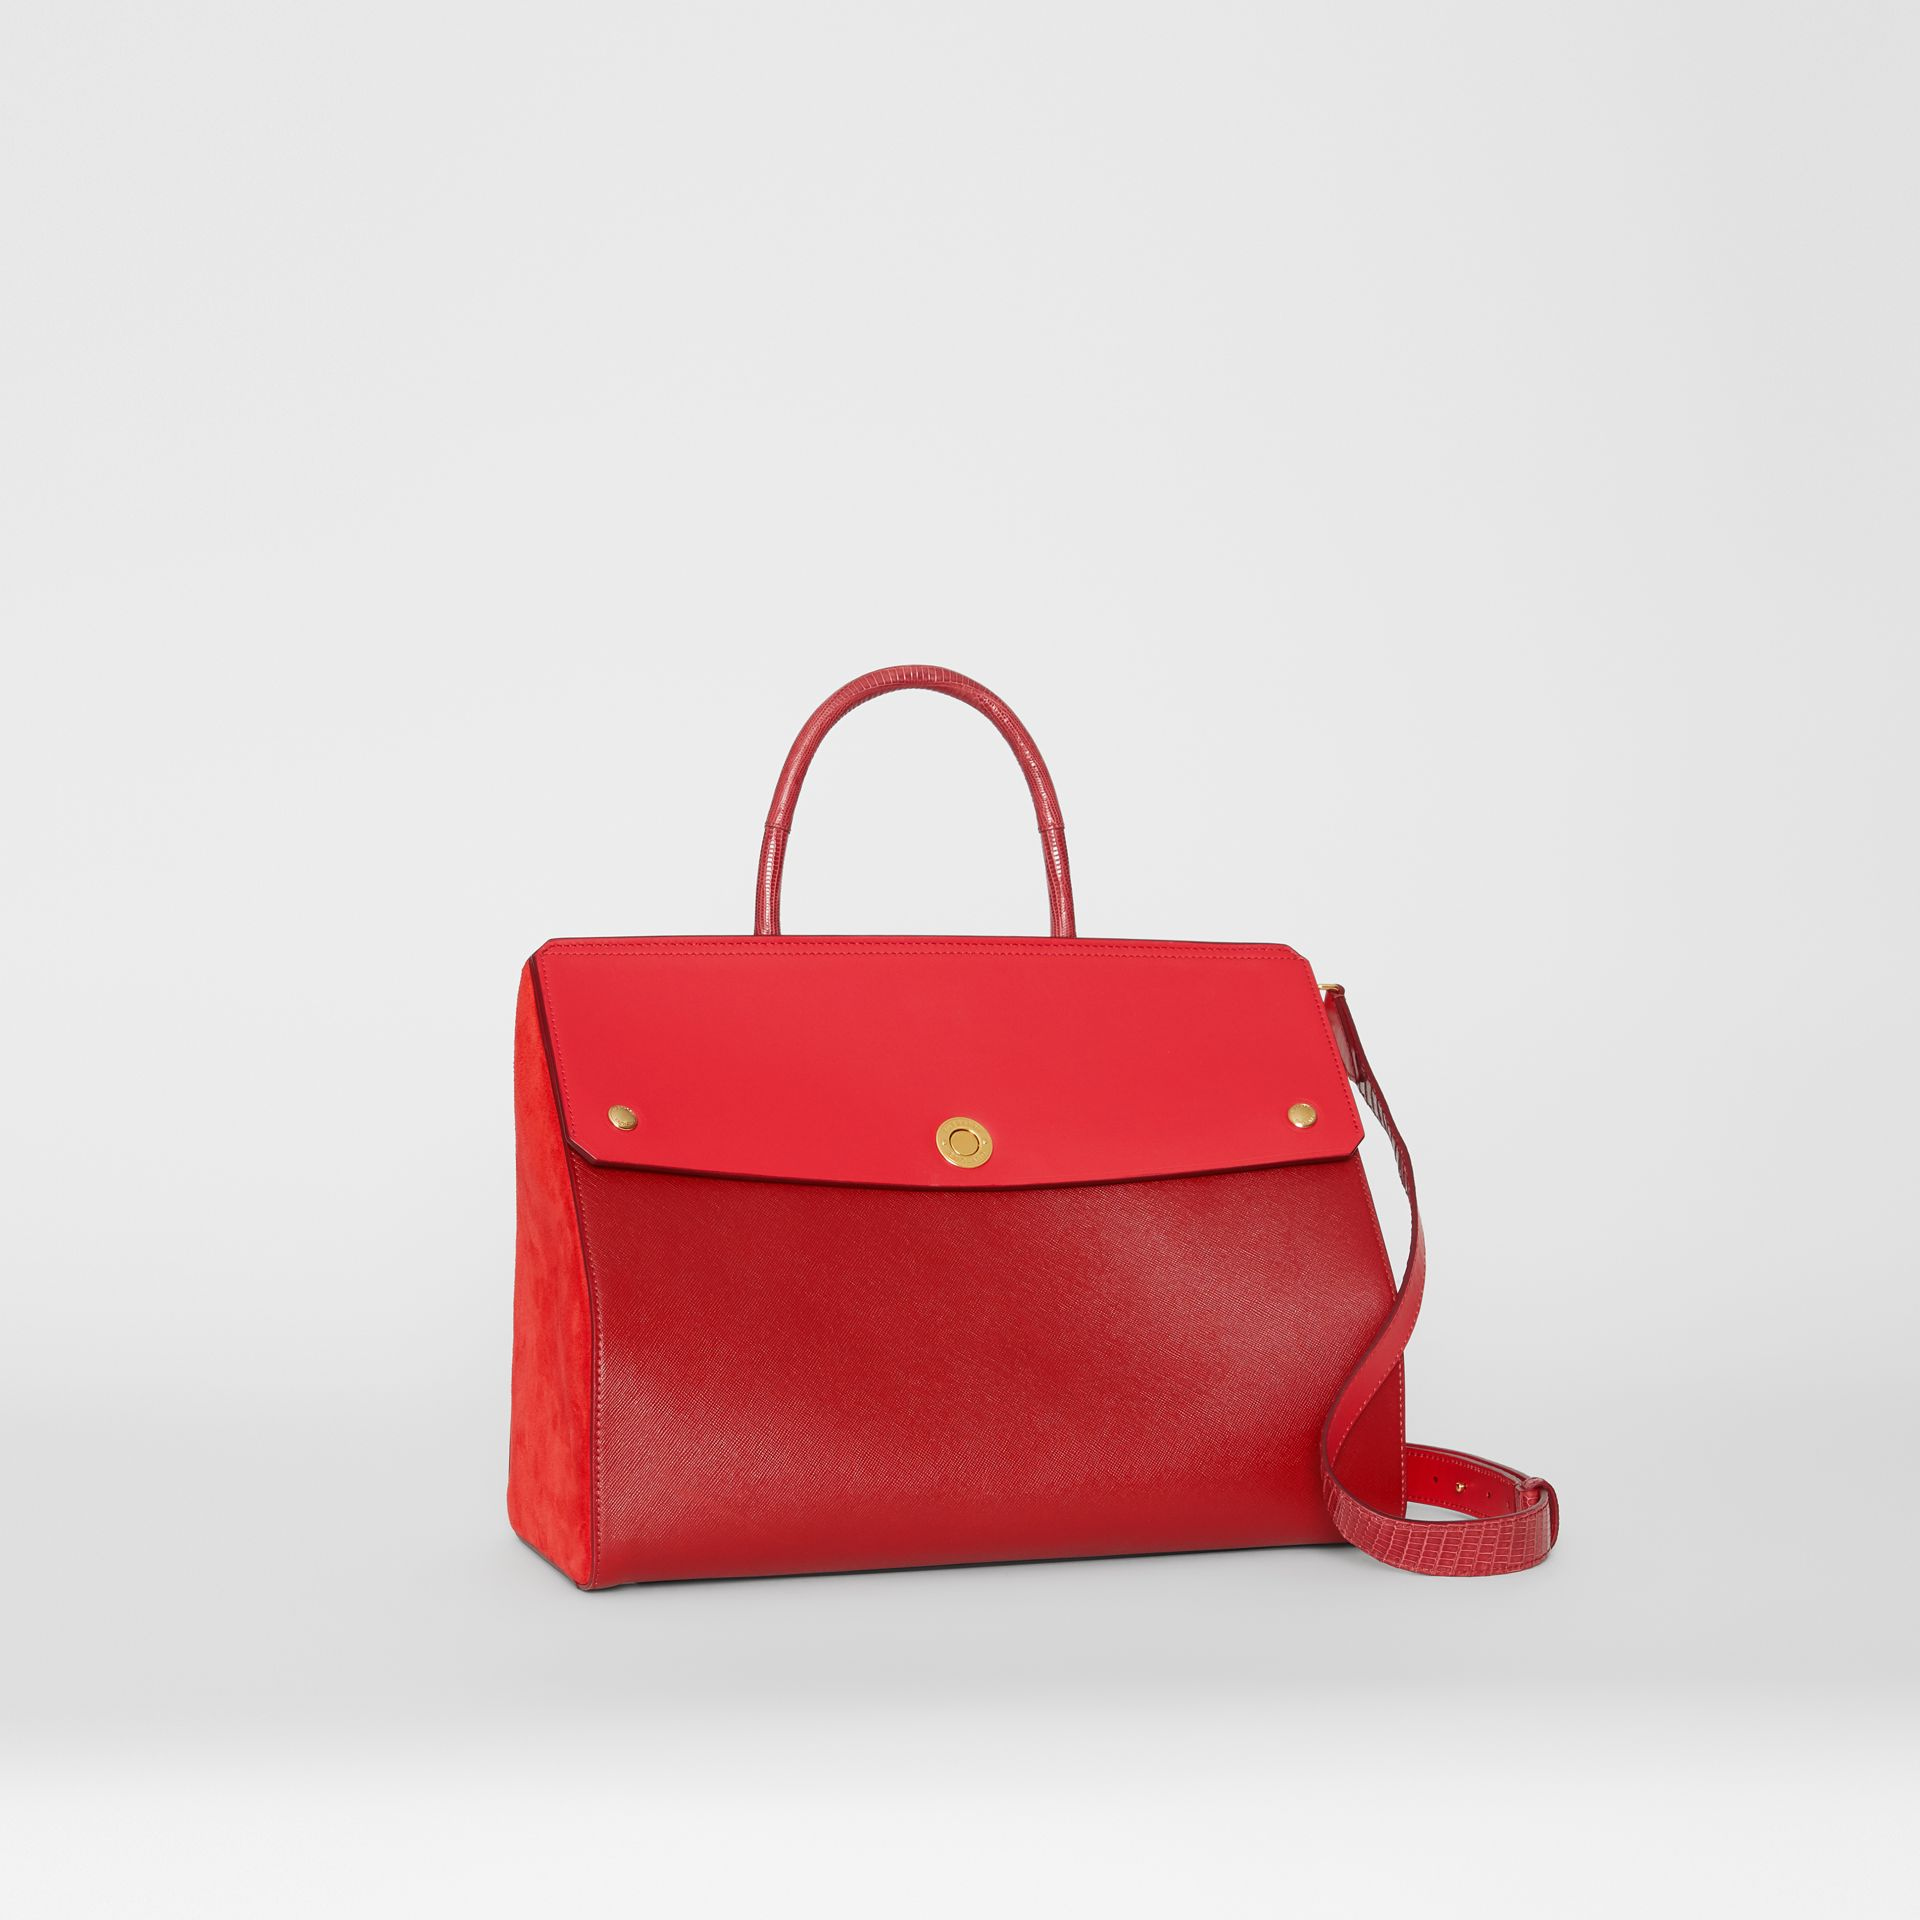 Small Leather and Suede Elizabeth Bag in Bright Military Red - Women | Burberry Singapore - gallery image 4